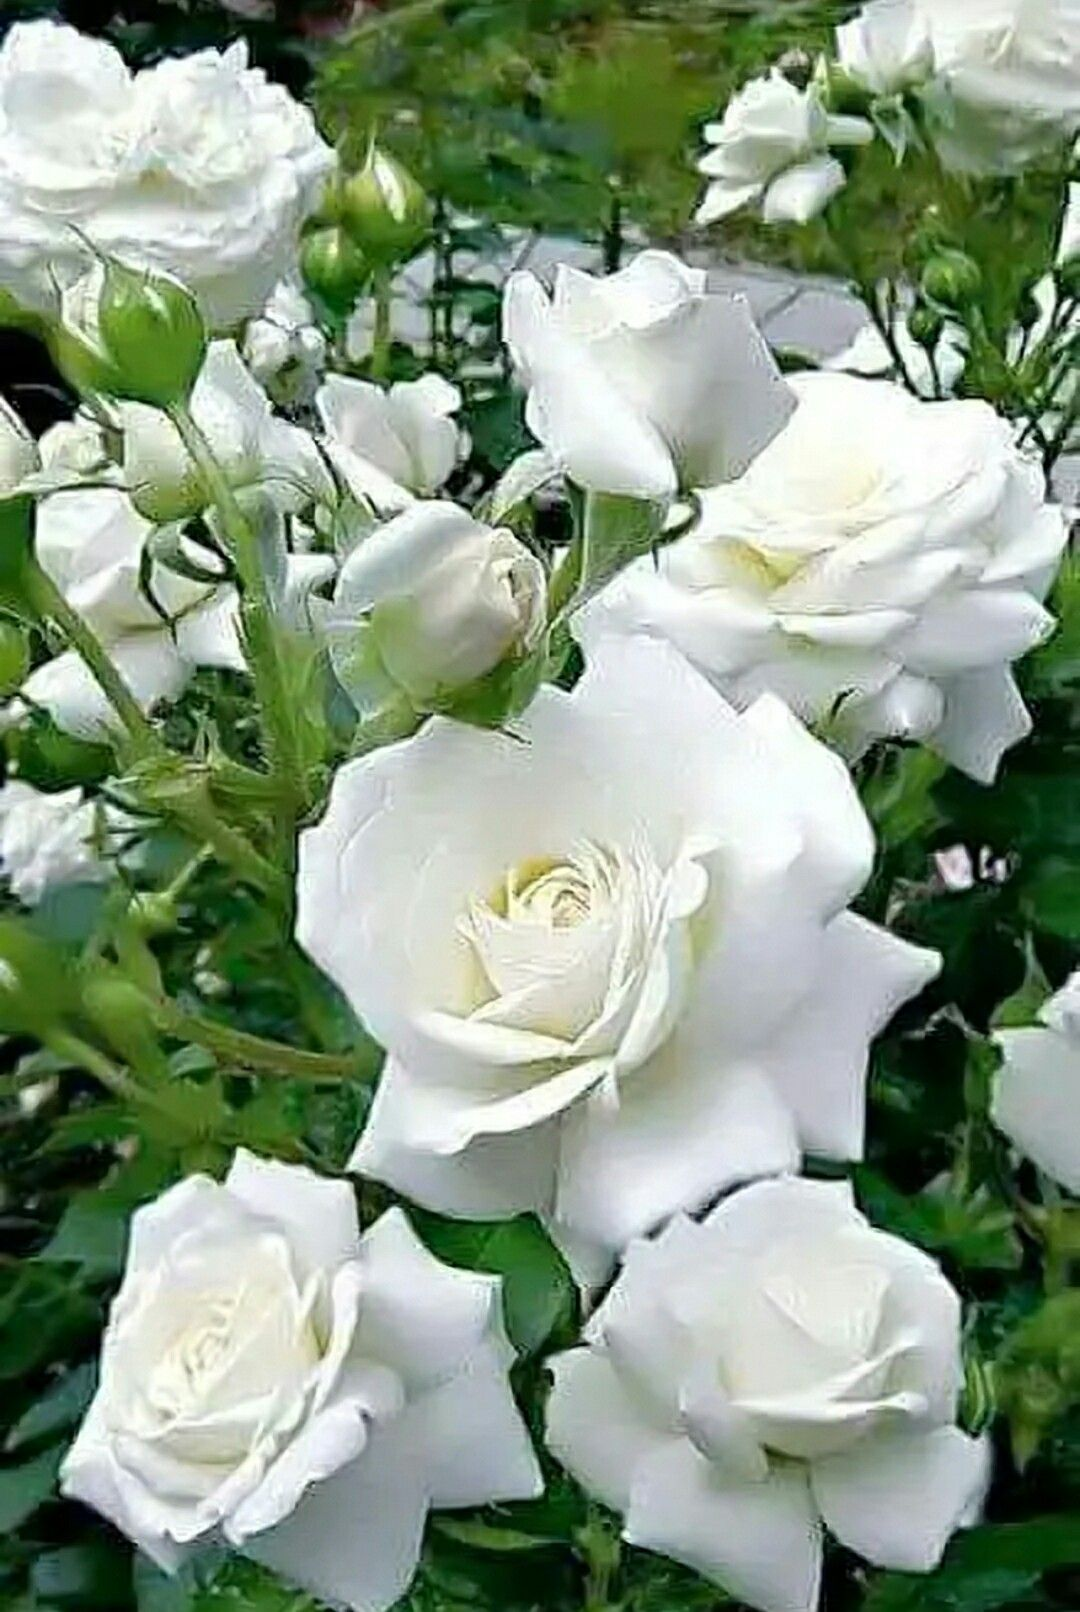 Pin by dorothy gerlach on flowers pinterest white roses flowers more information mightylinksfo